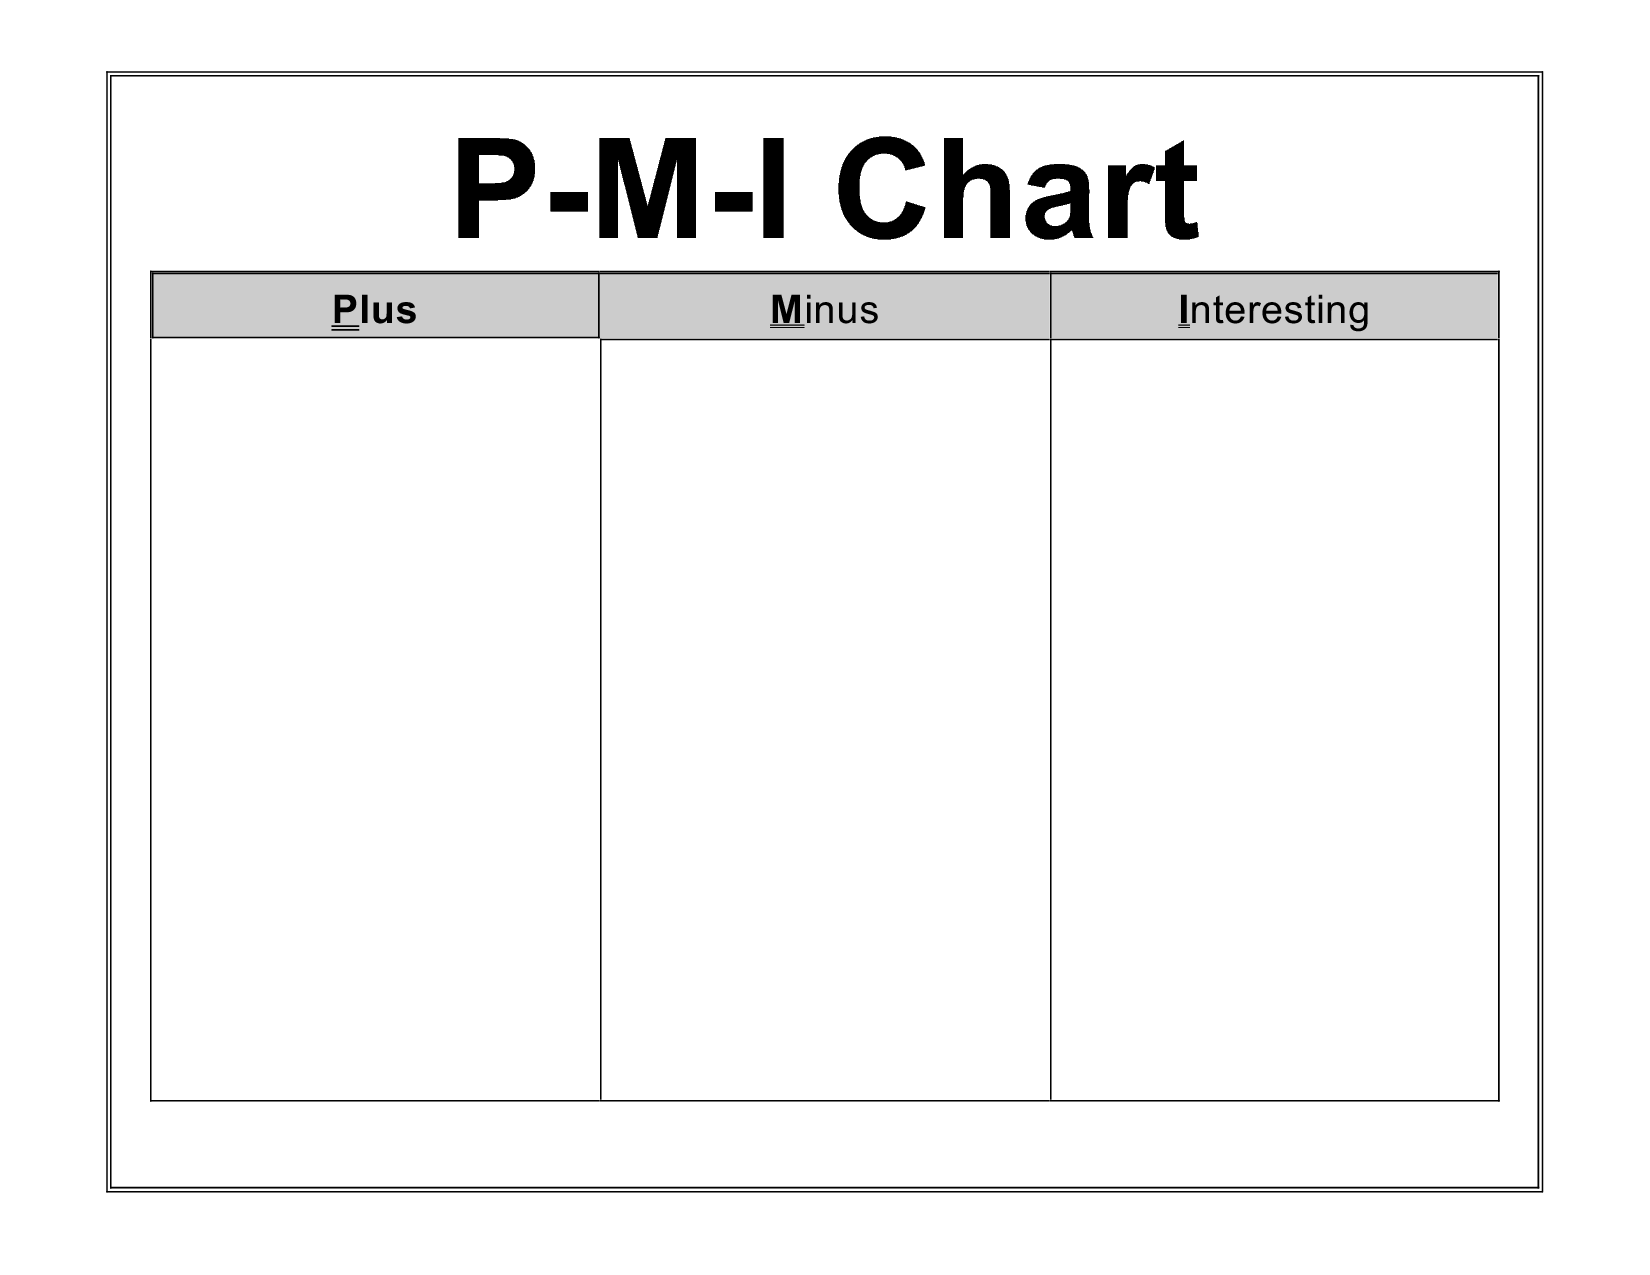 plus minus and interesting implication decision making tool Plus - minus - interesting weighing the pros and cons of a decision pmi stands for 'plus/minus/interesting' pmi is an important decision making tool: draw up a table with three columns headed plus, minus and interesting.